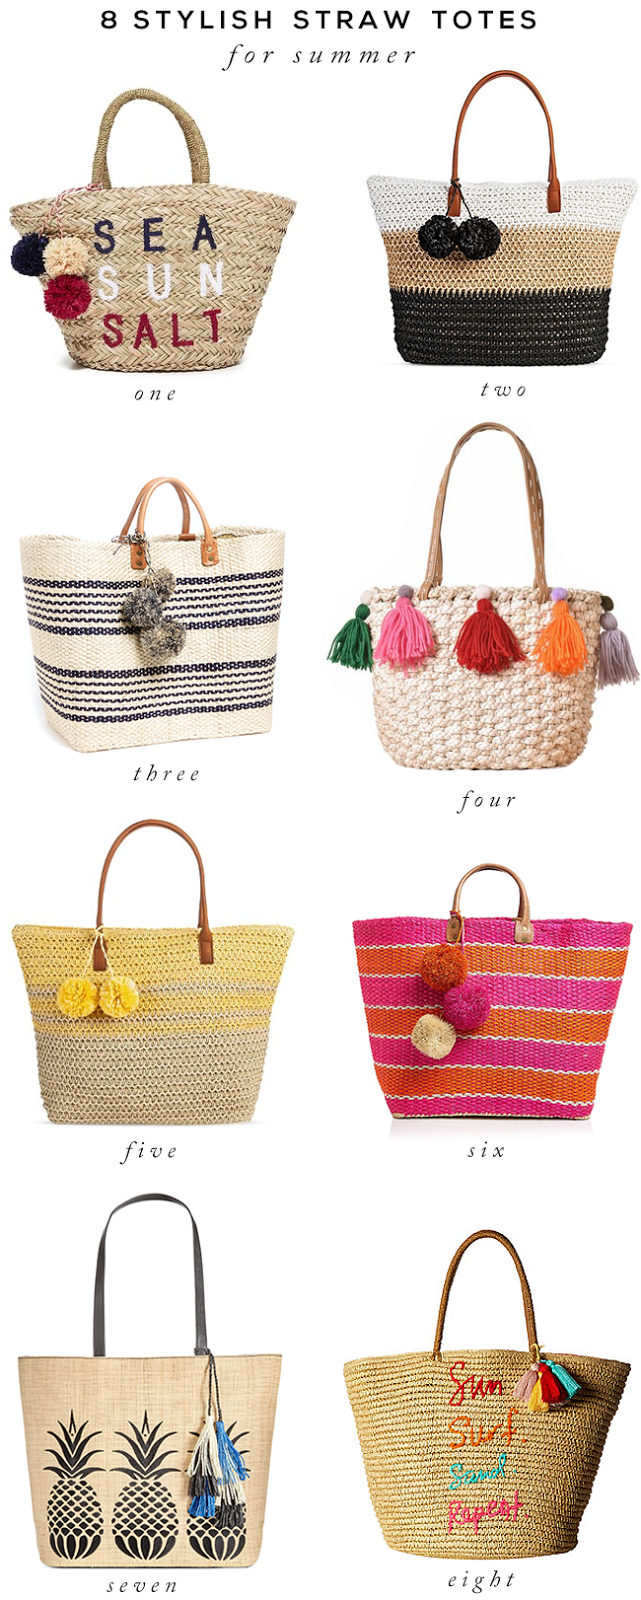 8 Style Straw Totes For Summer